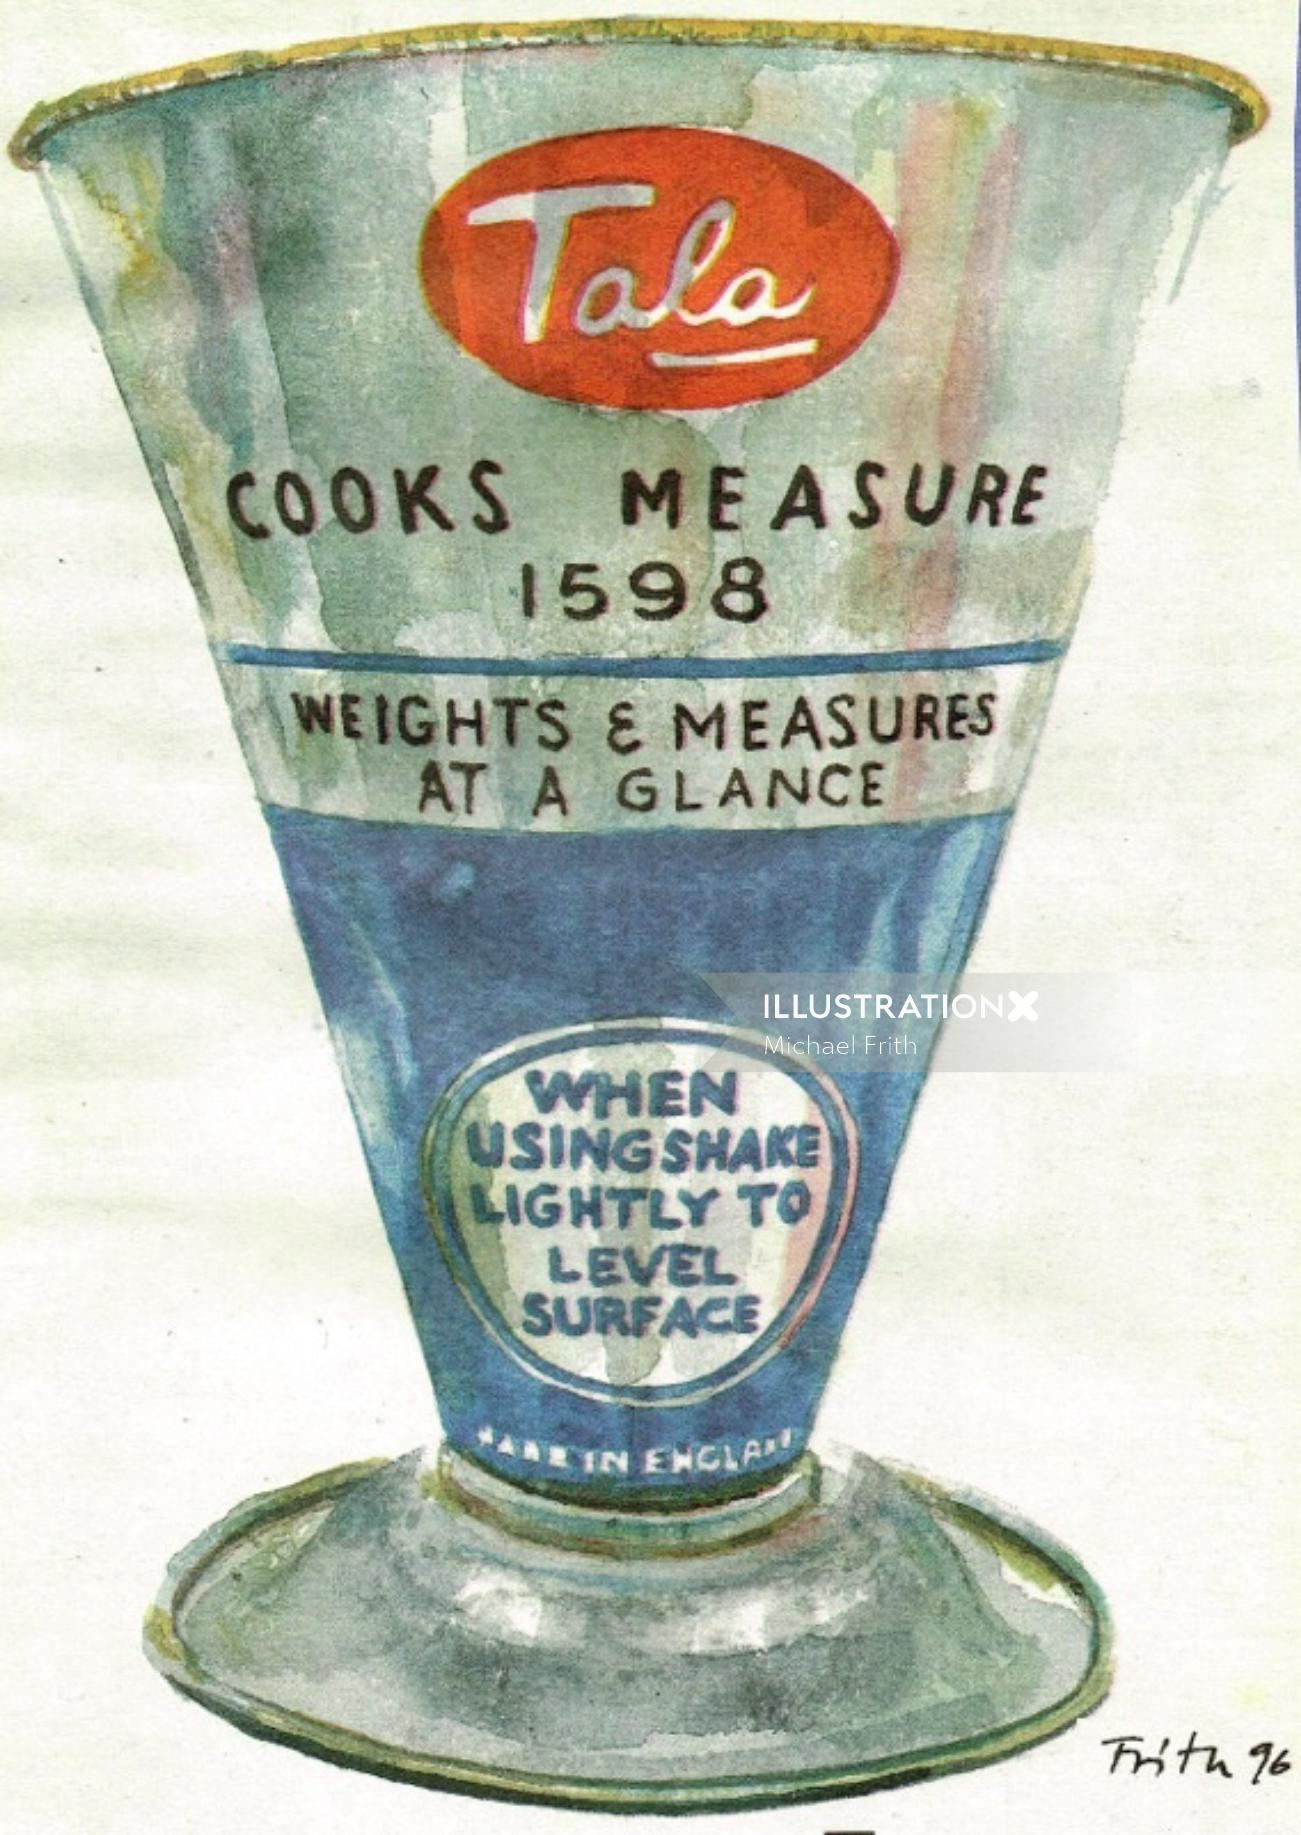 Packaging illustration of Tala cooks measure